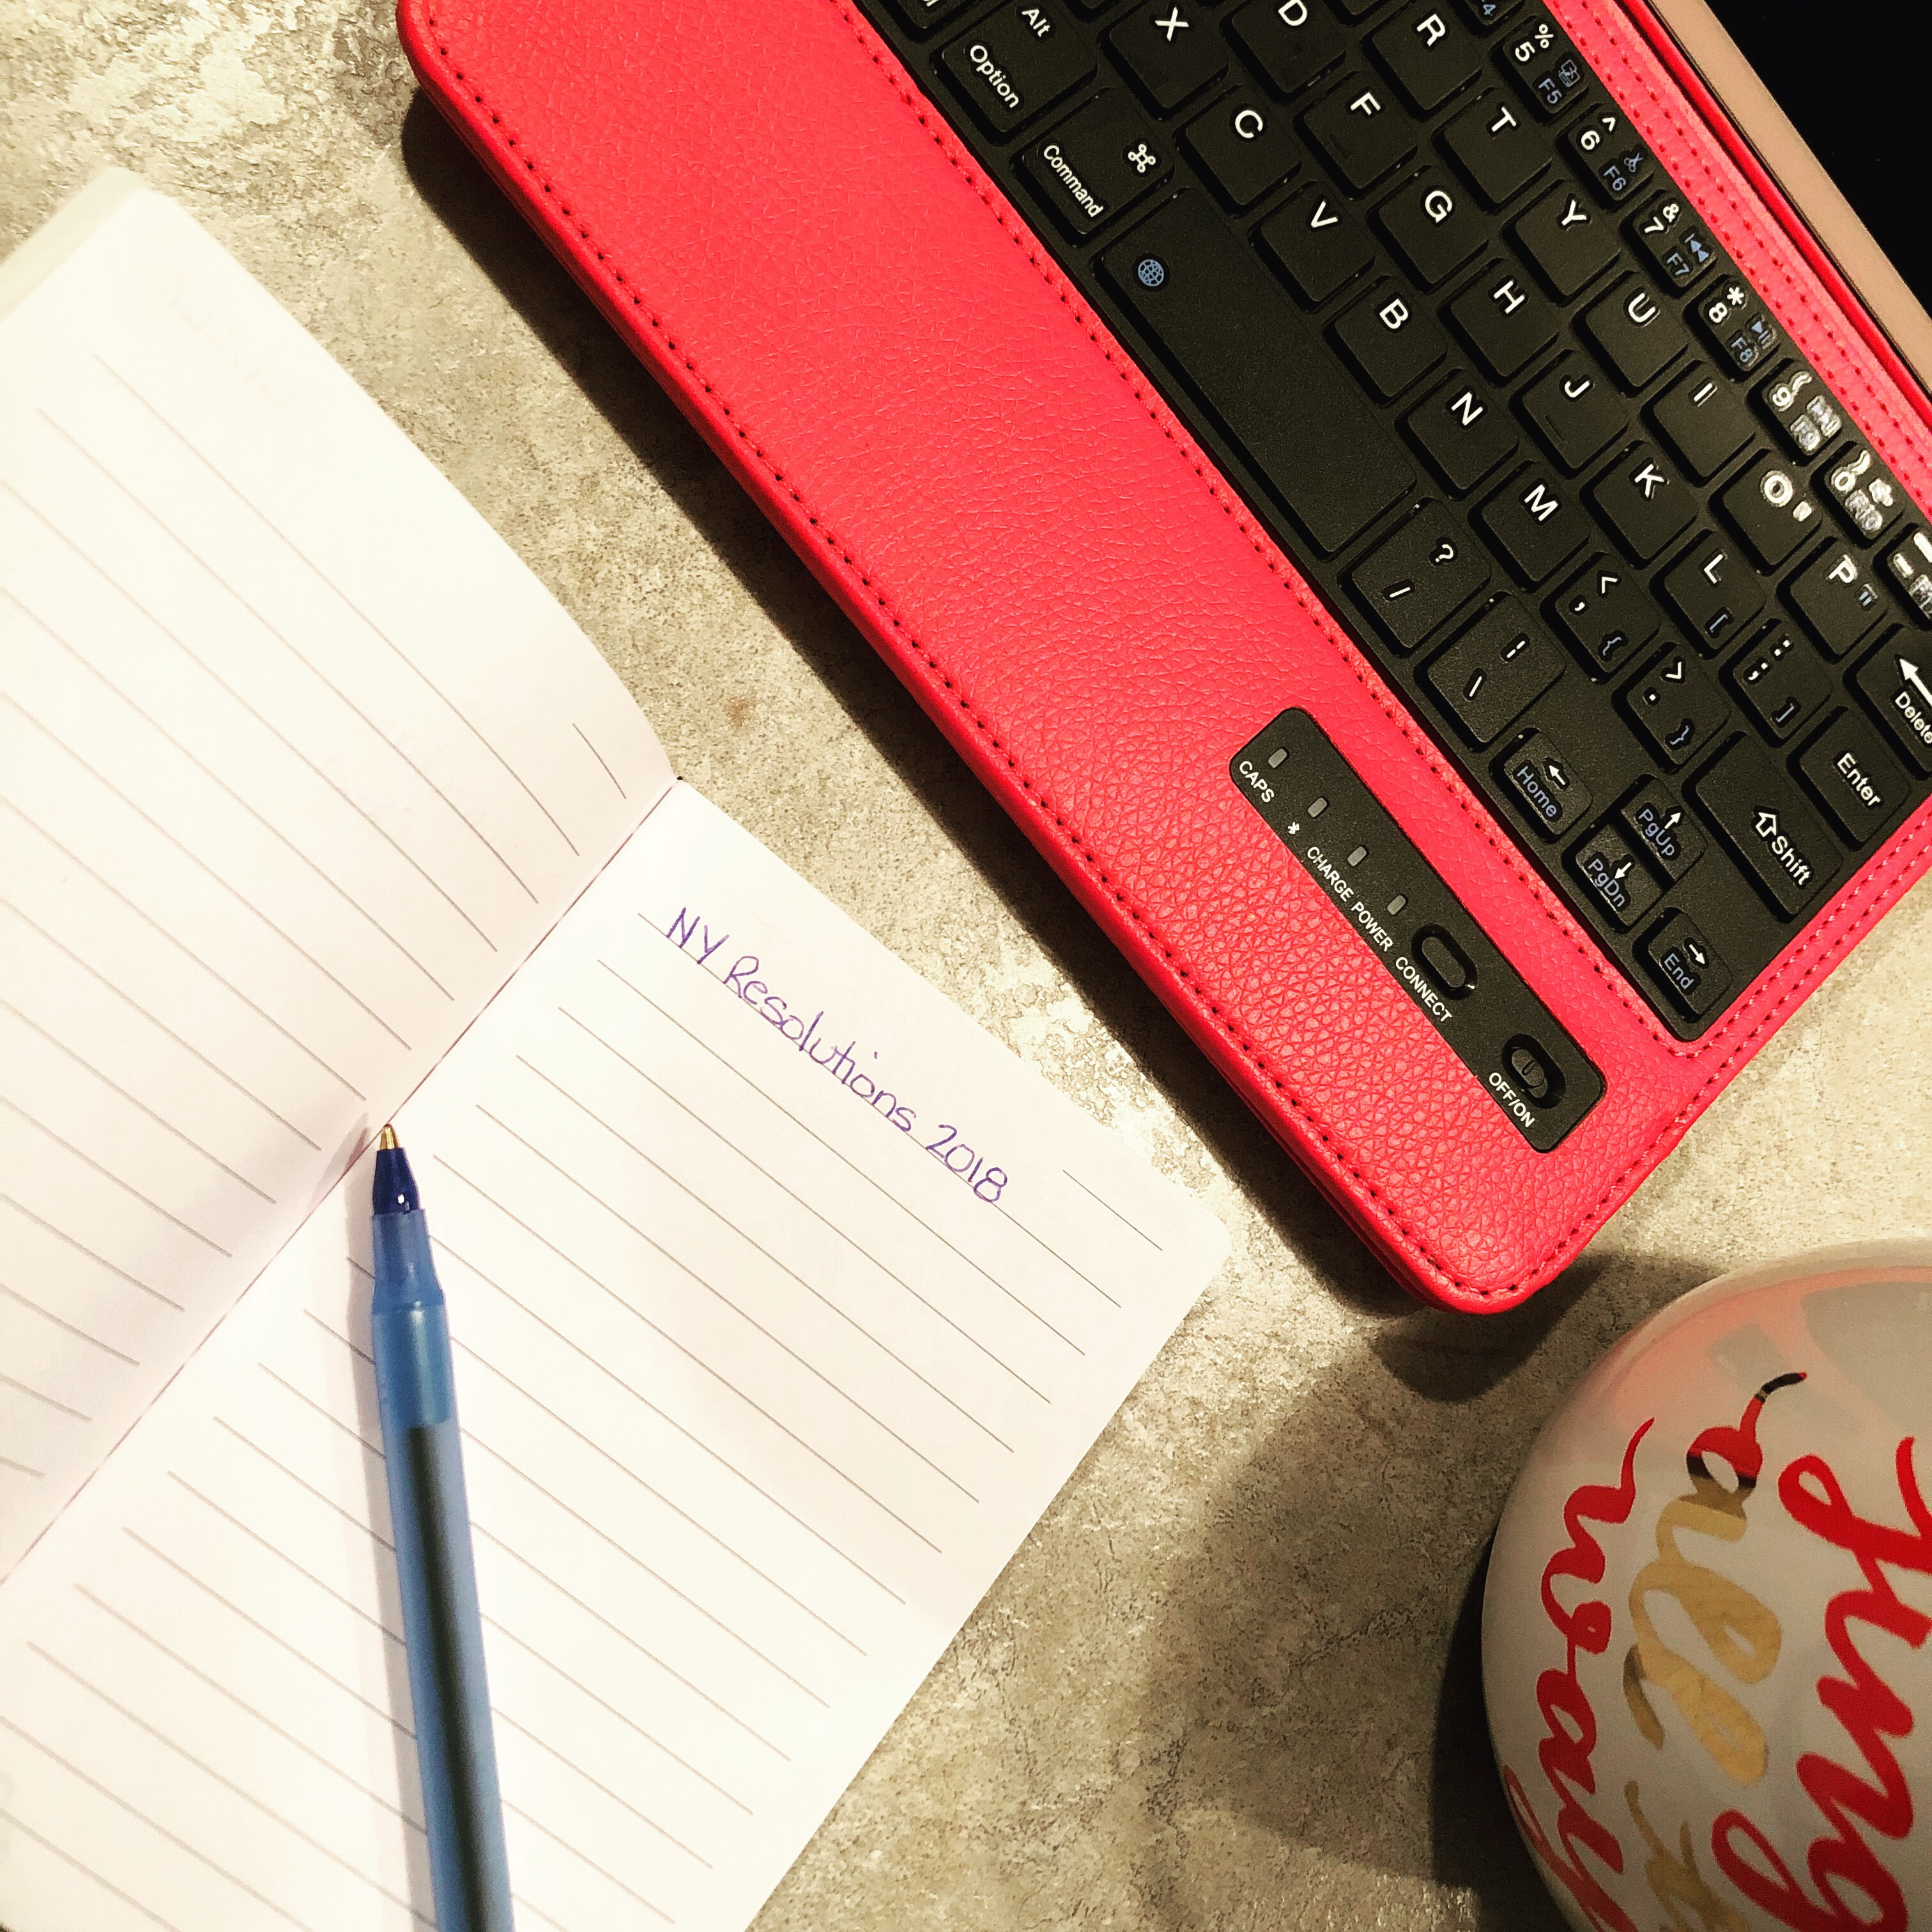 Creating Resolutions or Goal Planning for the New Year